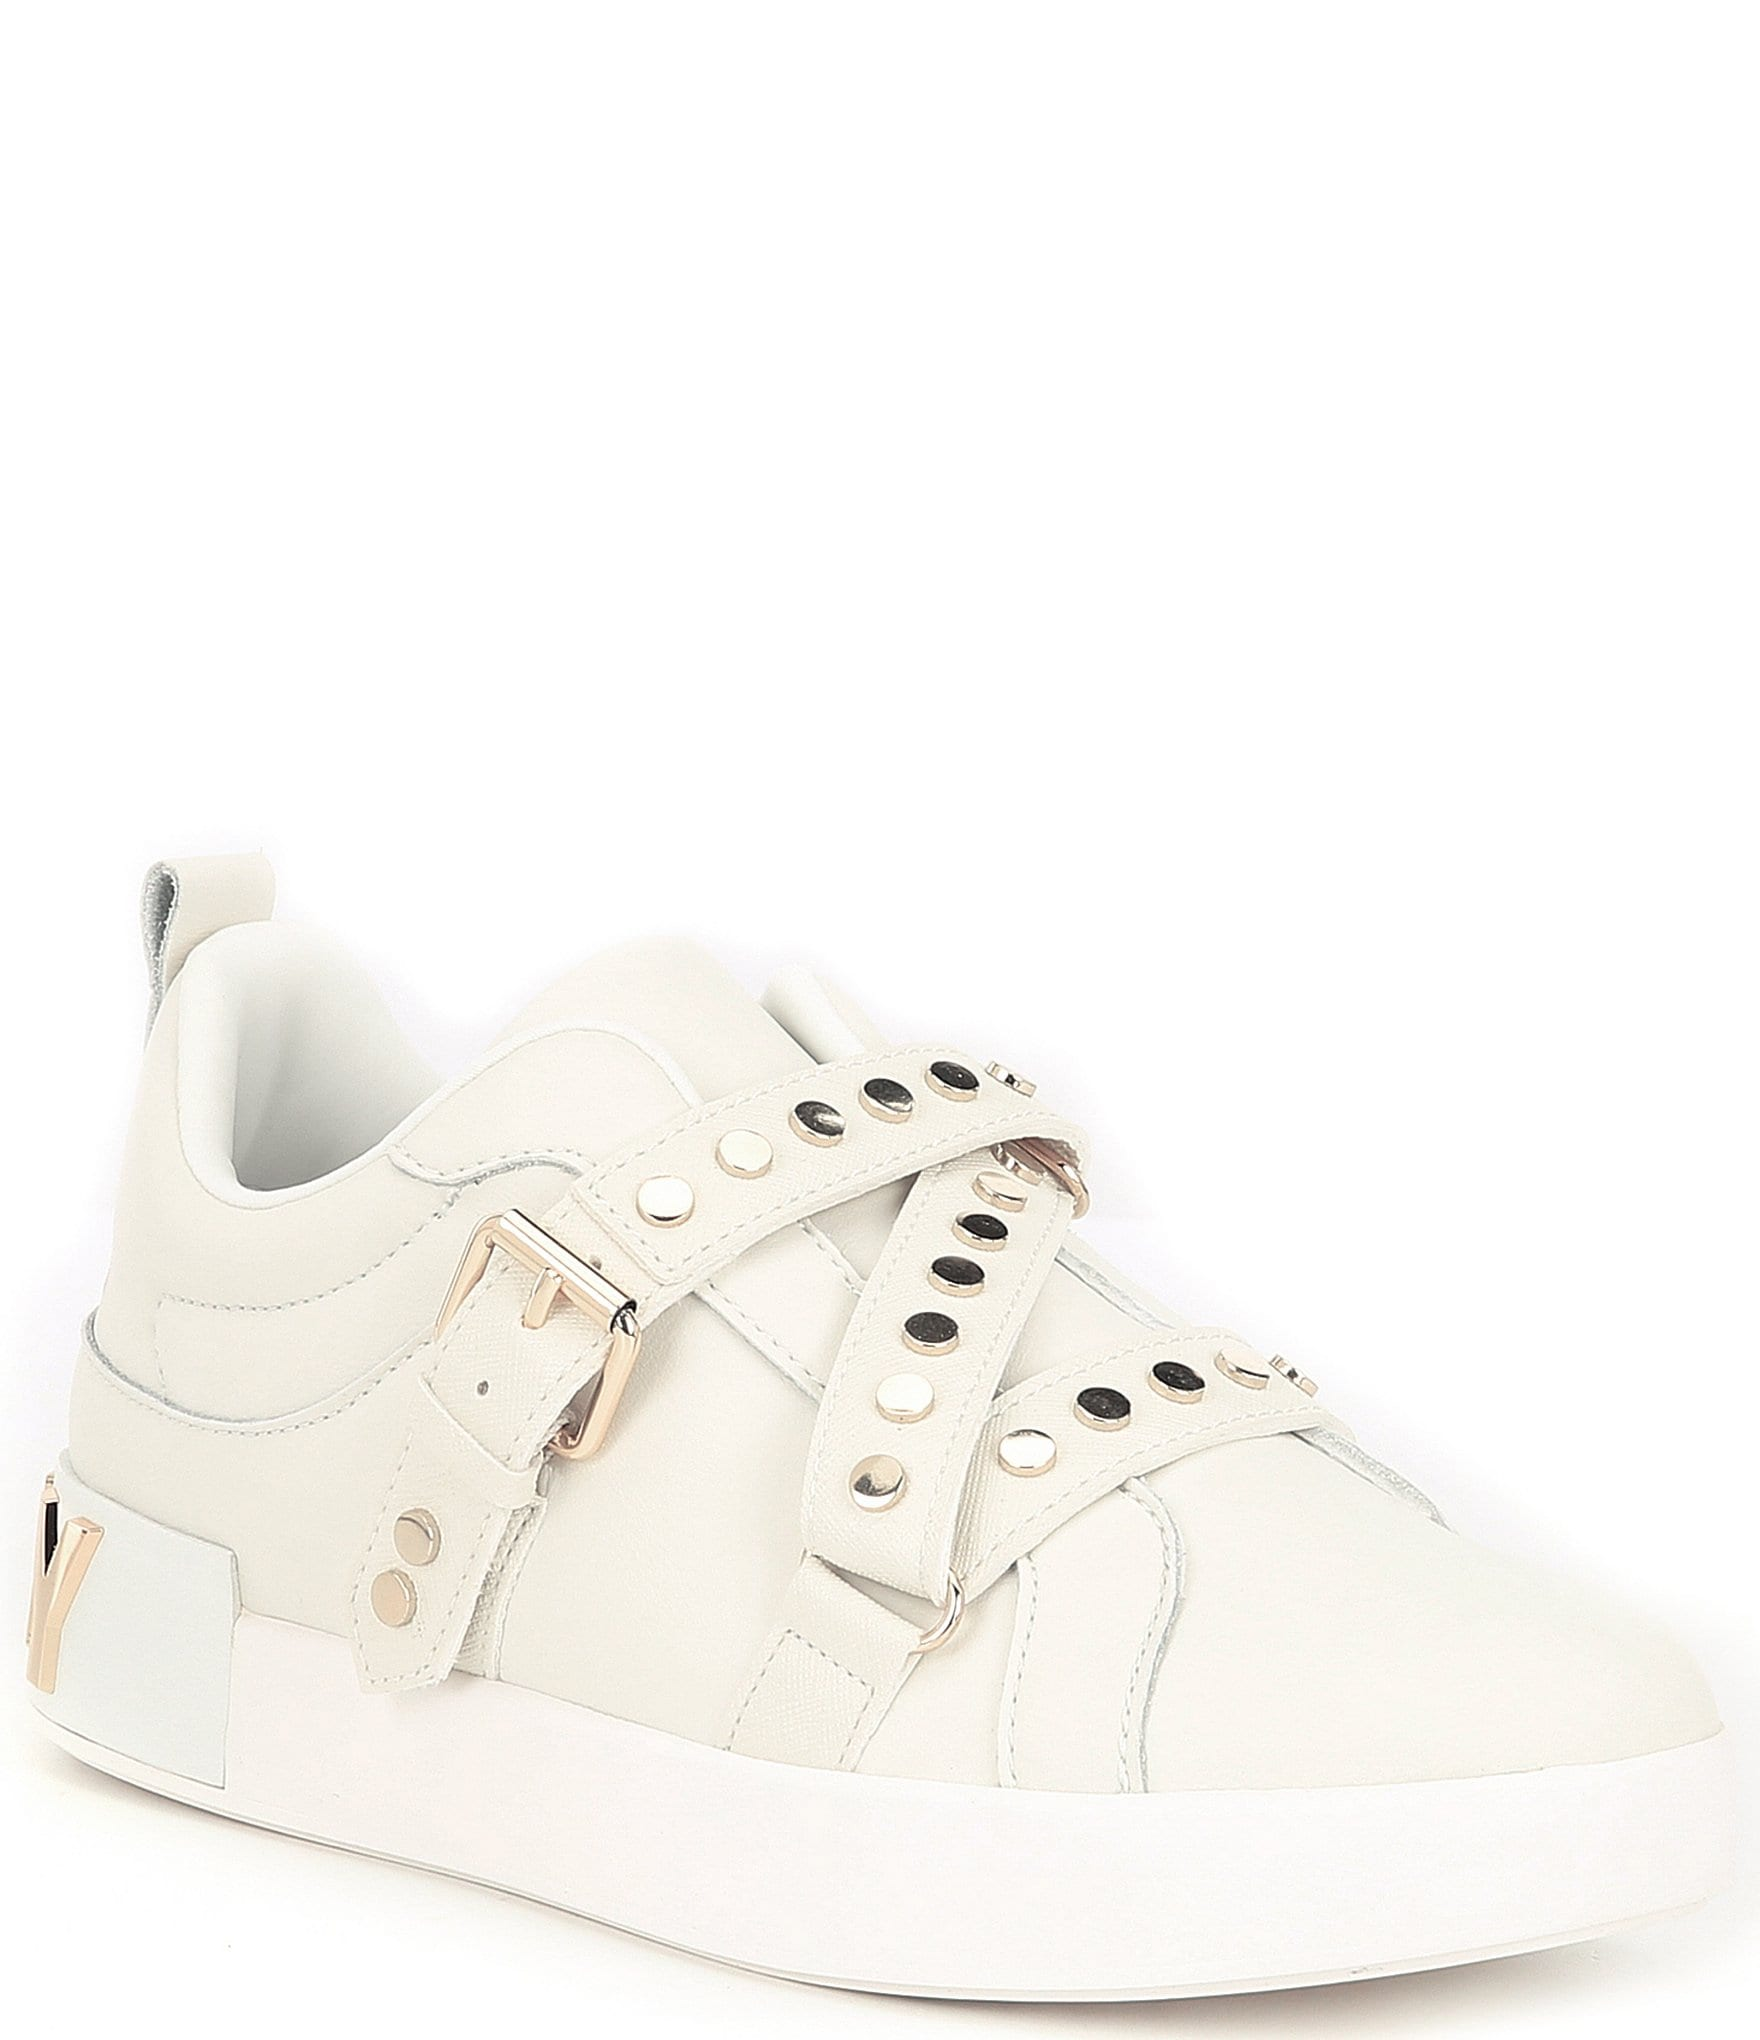 DKNY Studz Leather Studded Sneakers